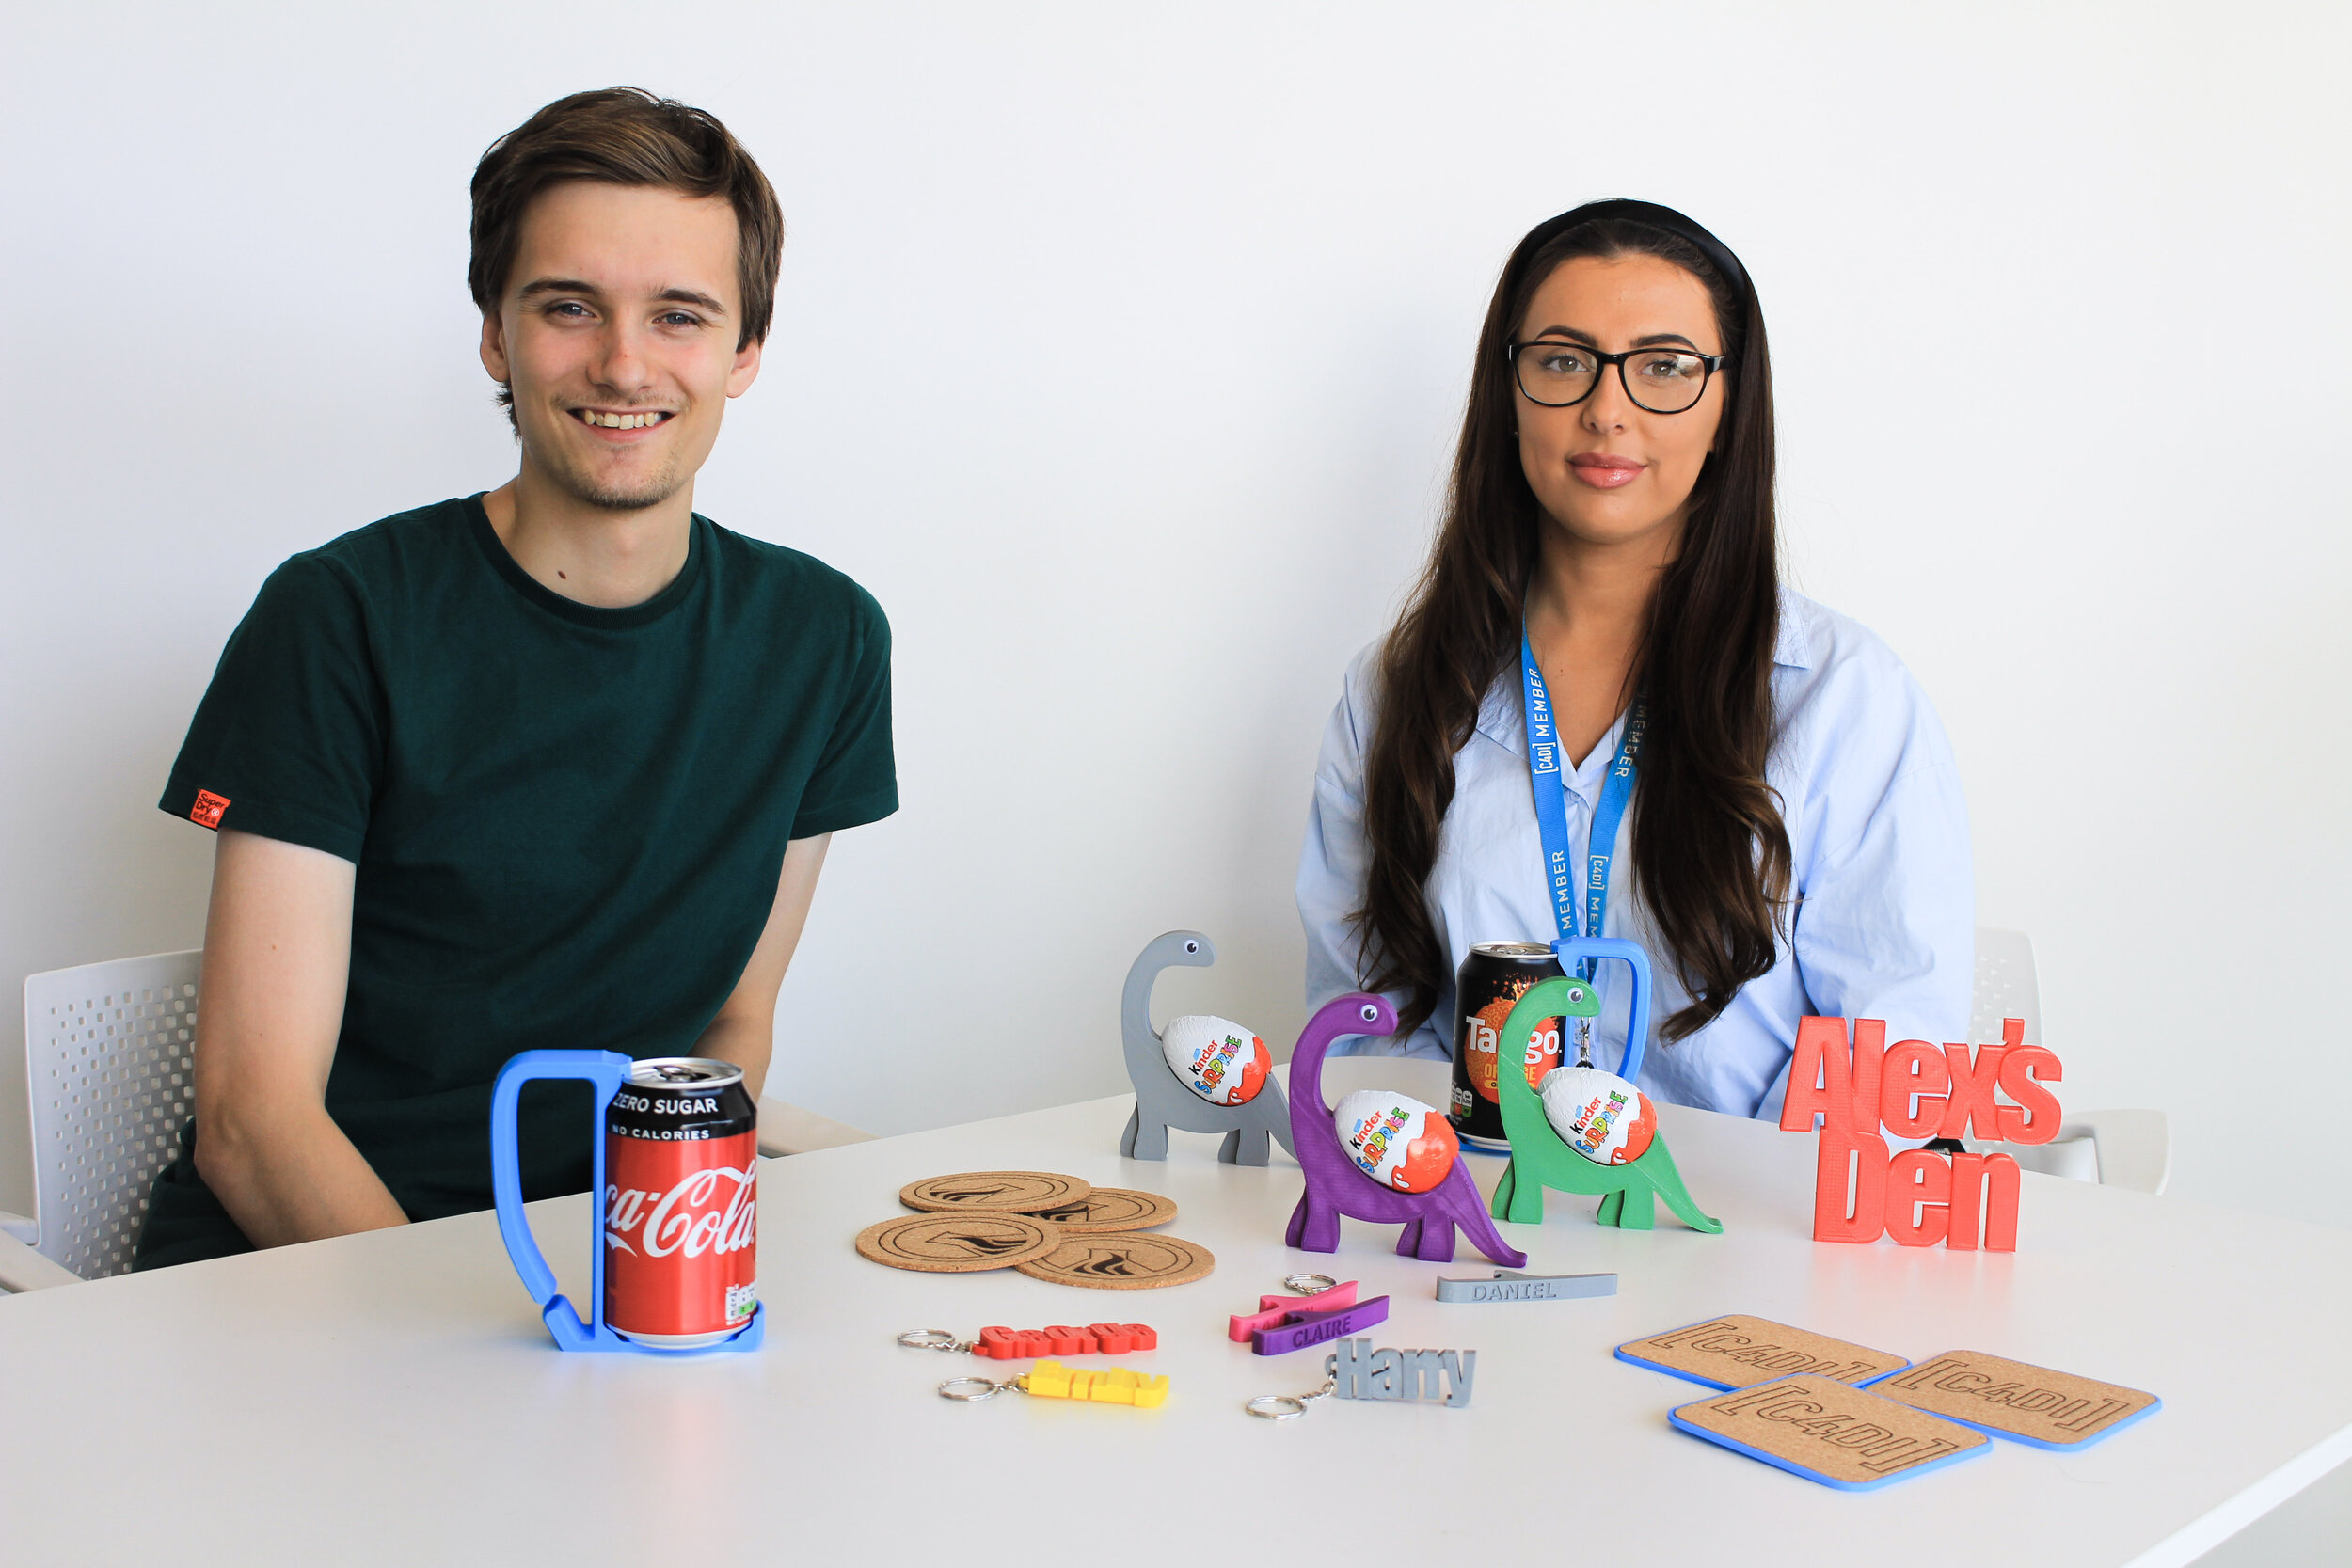 Alex Youden, Founder of NFire Labs (left) and Alexandria Hanson, NFire Angel (right) pictured with some of their products from the new NFire gift range.